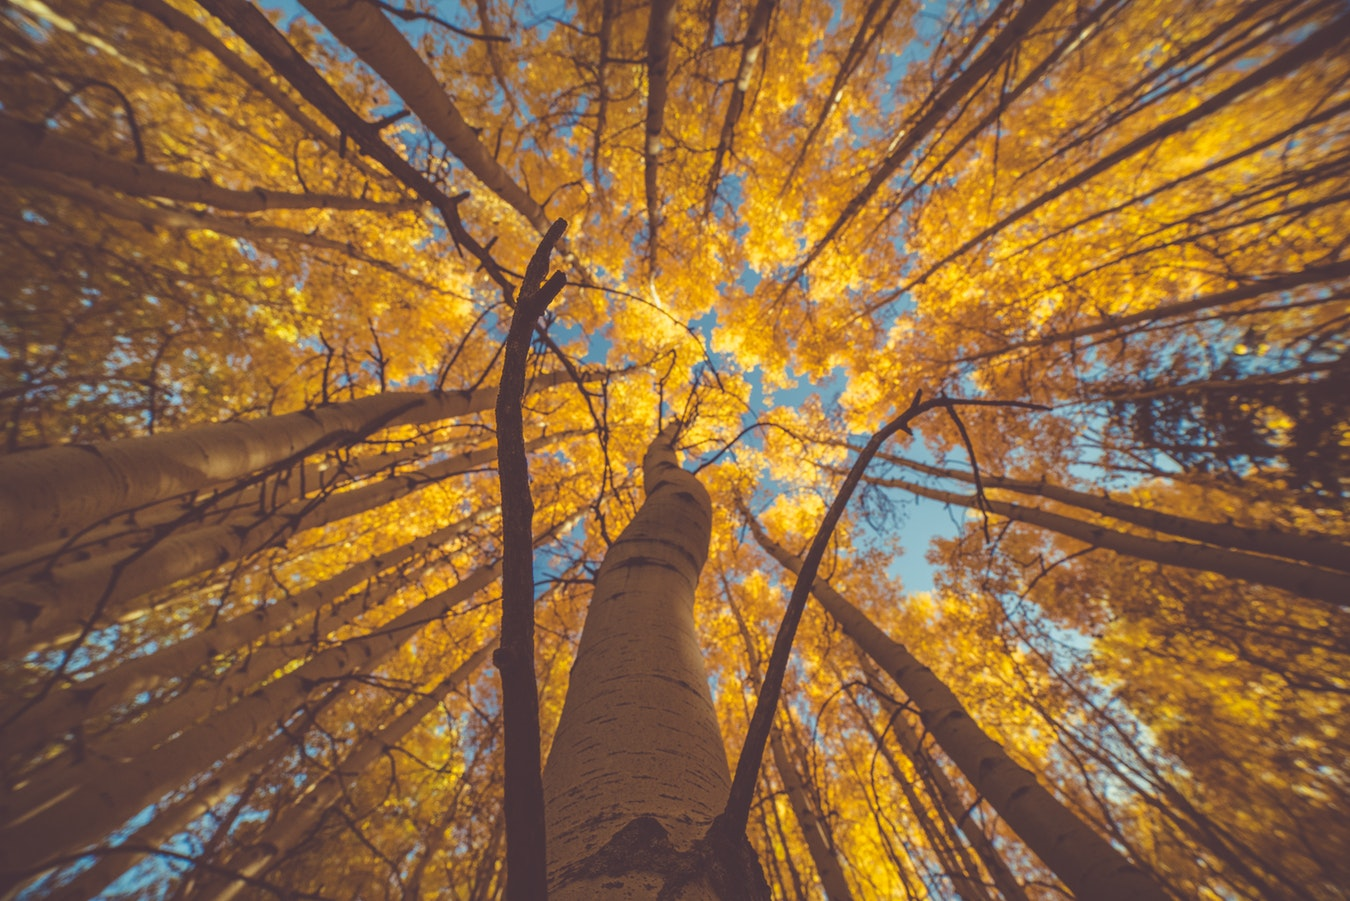 Vail trees  | Real Estate and Lifestyle in Northern Colorado, a blog by Joanna Gyrath, Realtor | Search homes in Fort Collins, Loveland, Greeley, Windsor, Longmont, Laporte, Wellington, Timnath, Severance, Eaton, Evans, Livermore, Red Feather Lakes